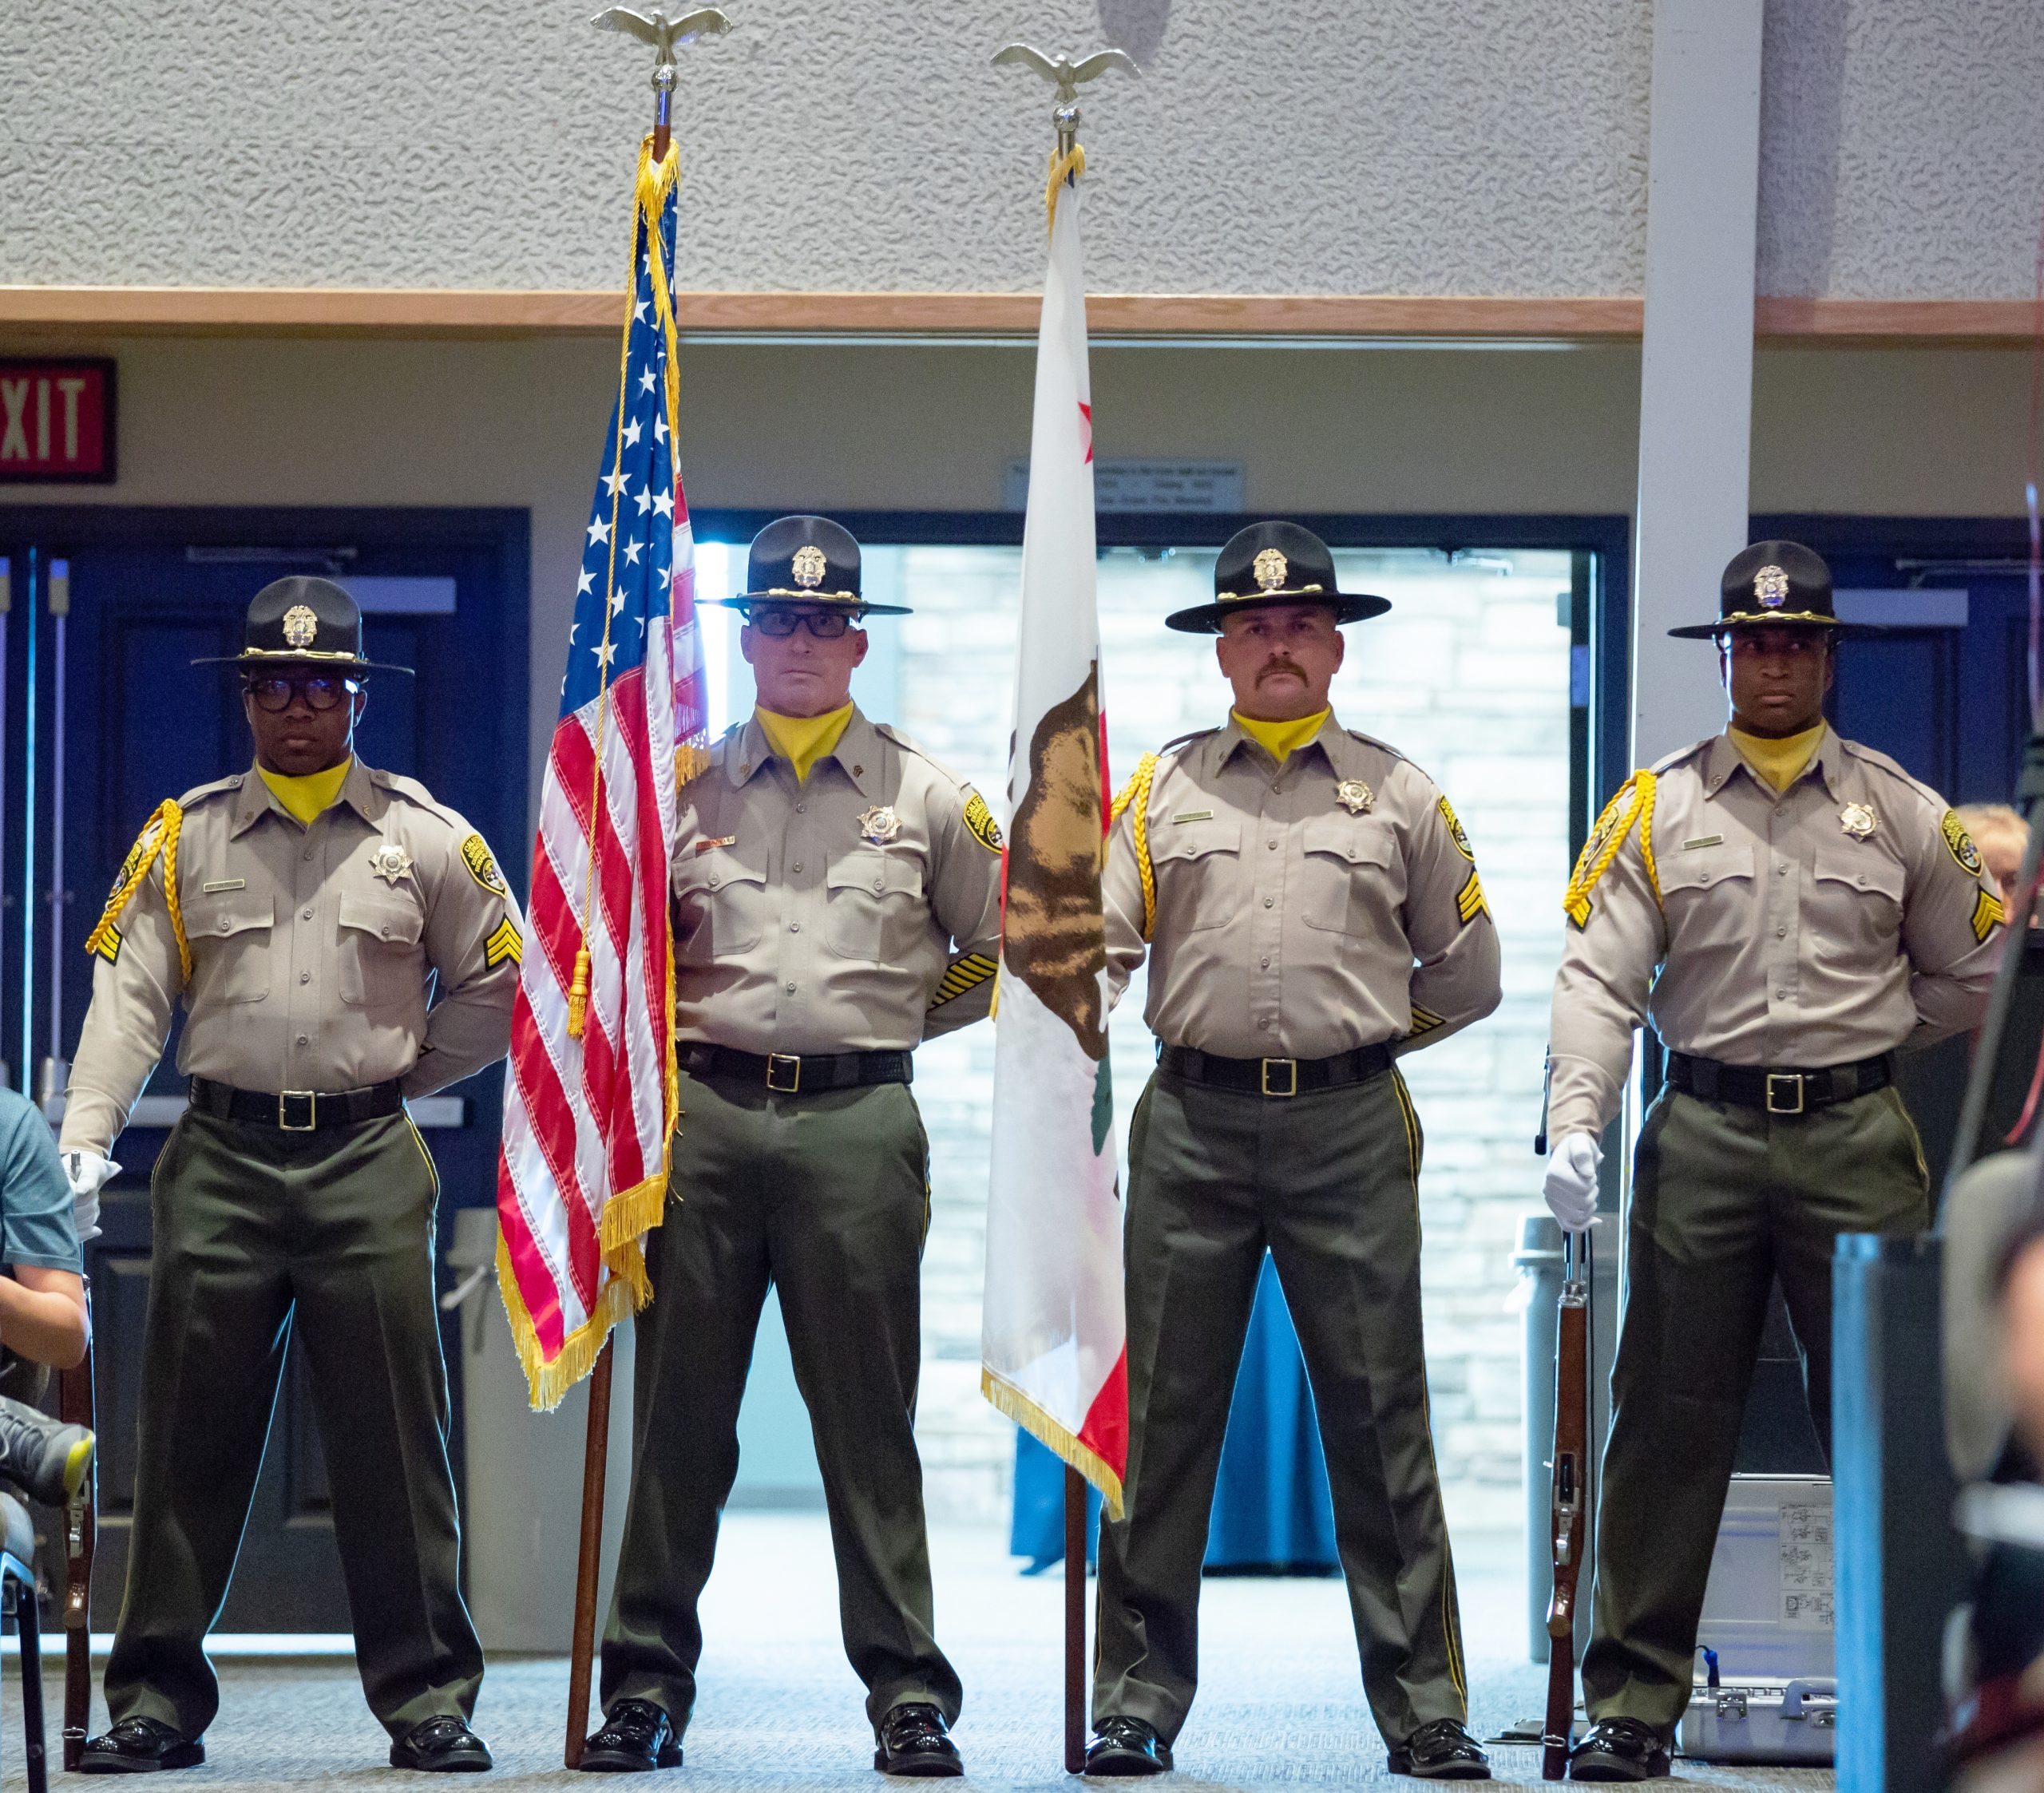 Four uniformed officers facing camera with one holding U.S. flag and another holding California flag.